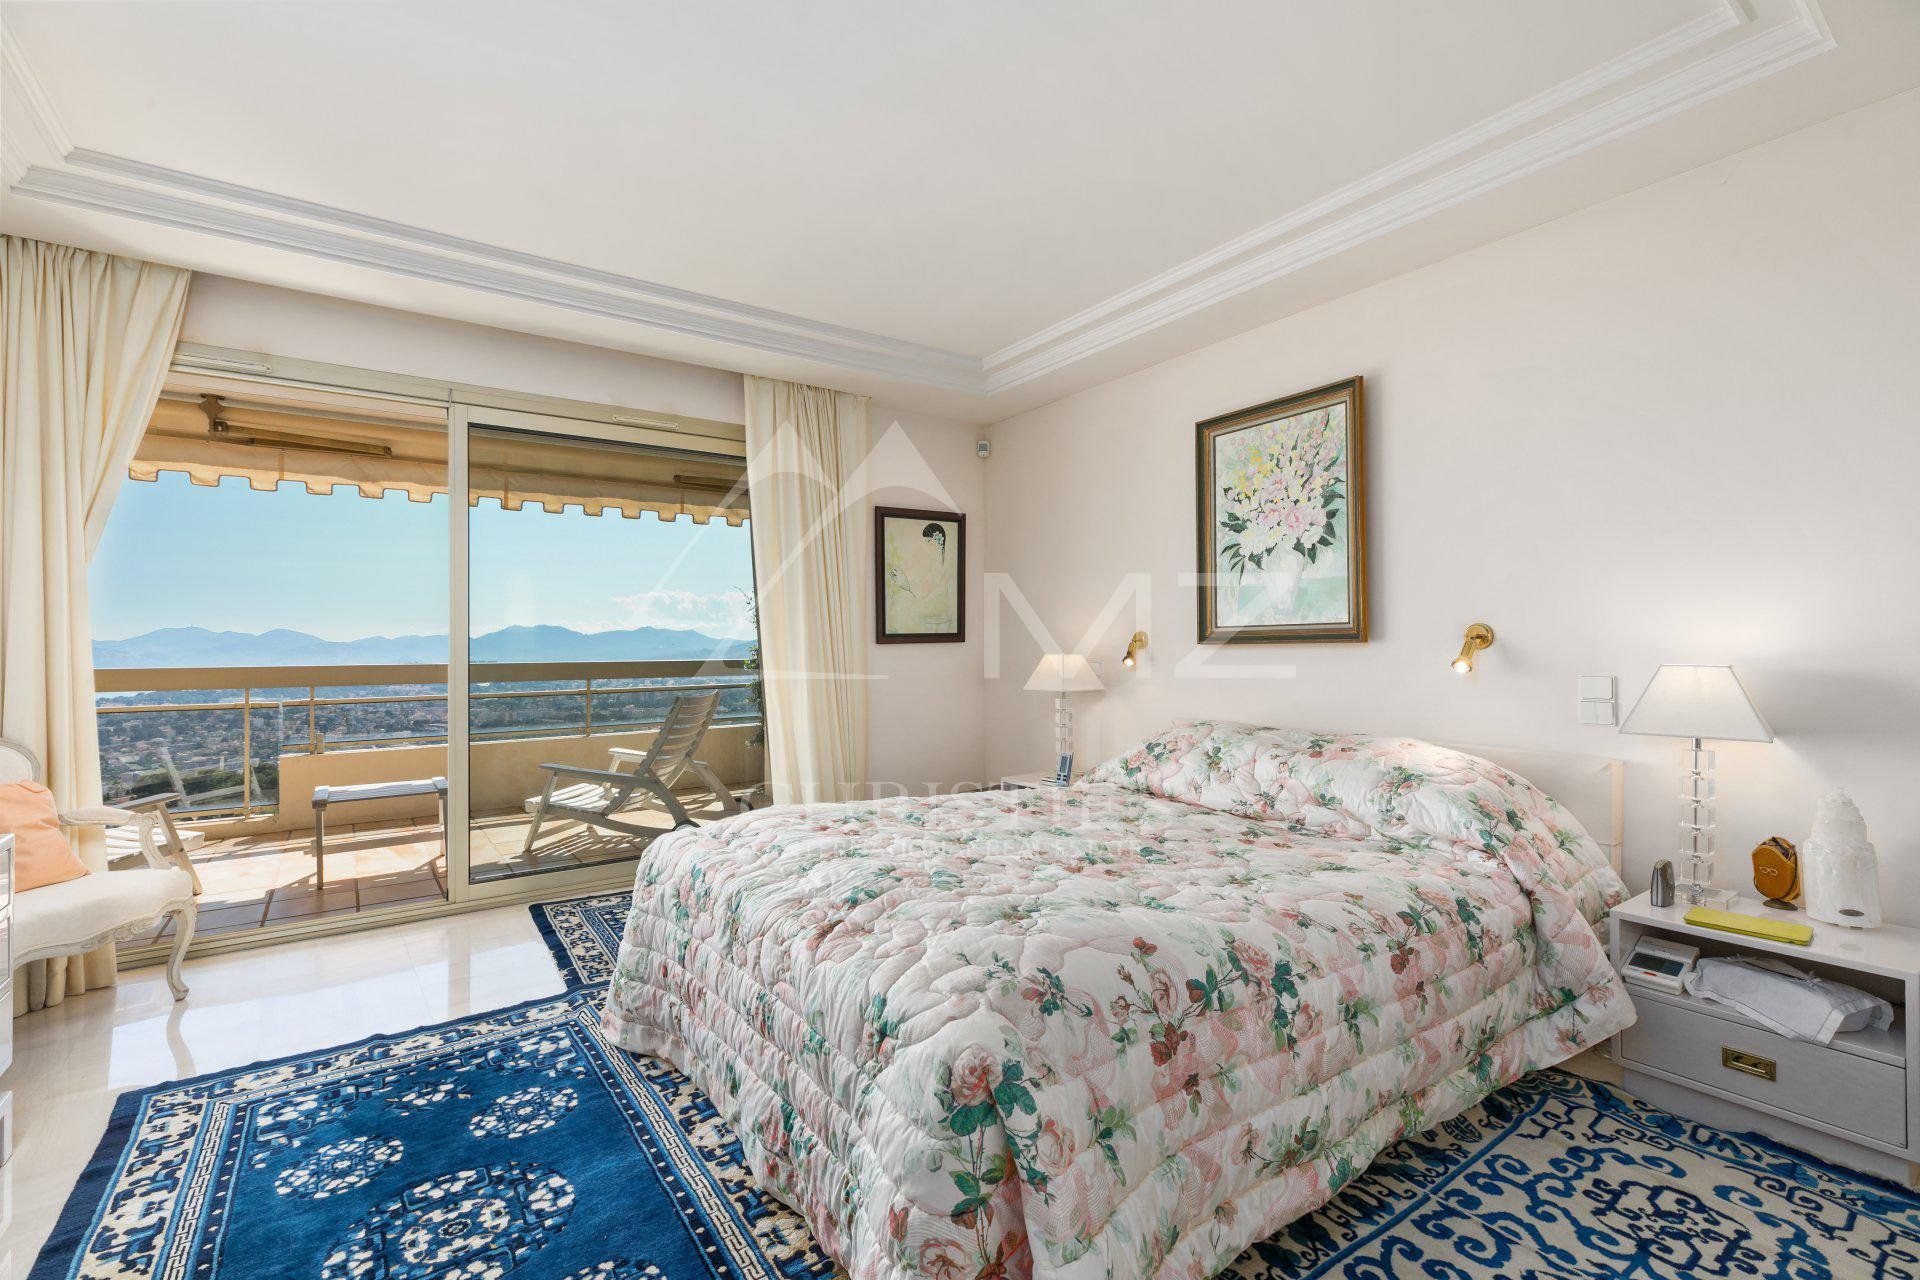 Close to Cannes - On the heights - Splendid sea view apartment